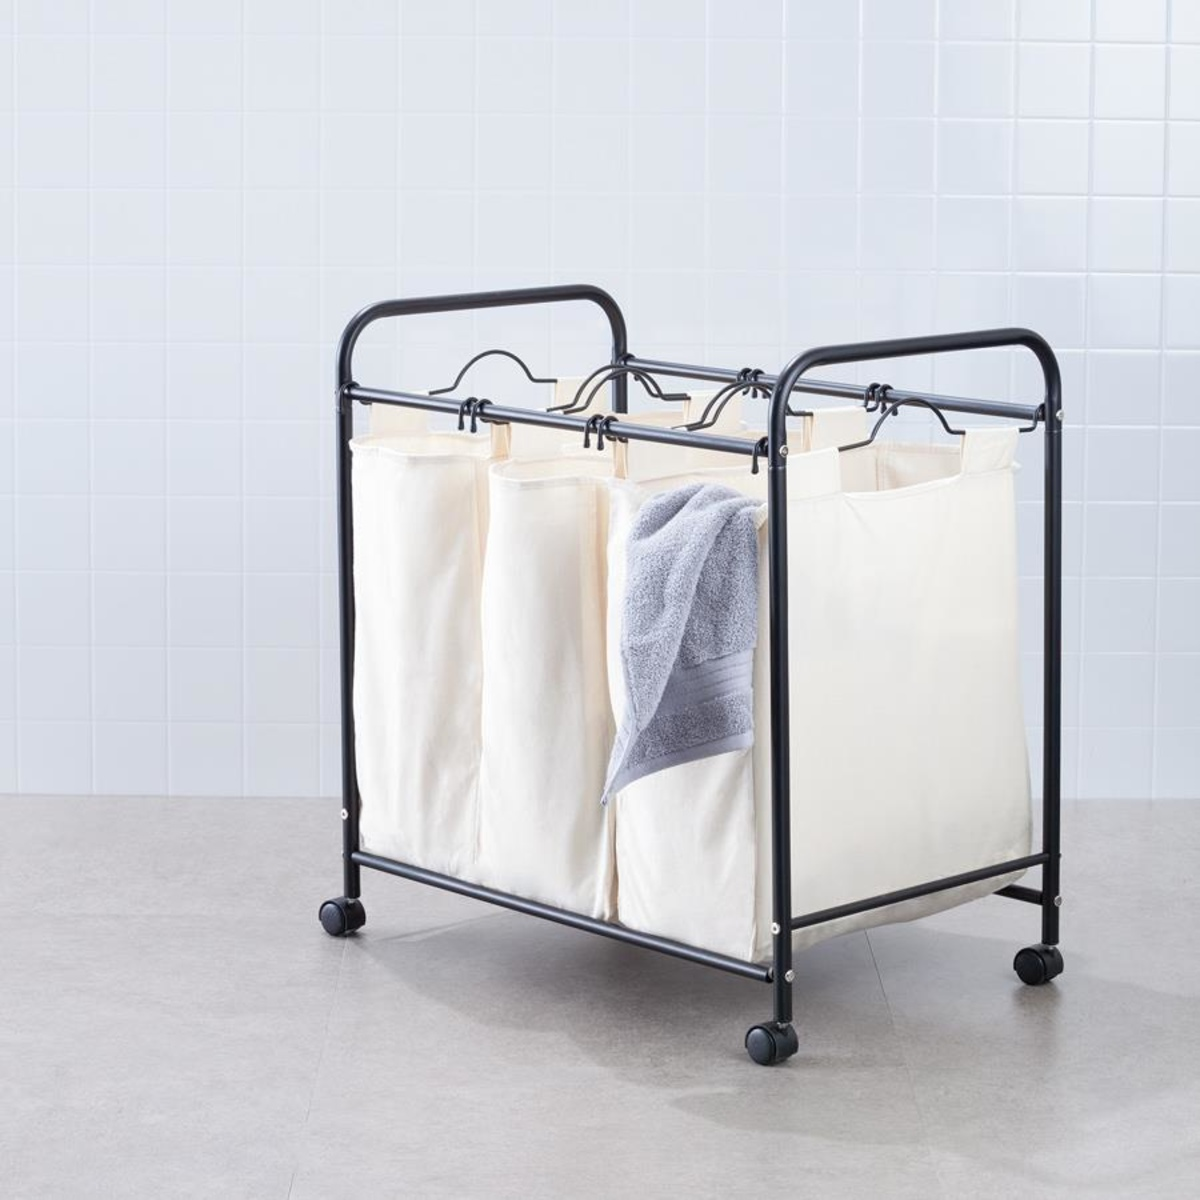 Laundry Sorter Removable